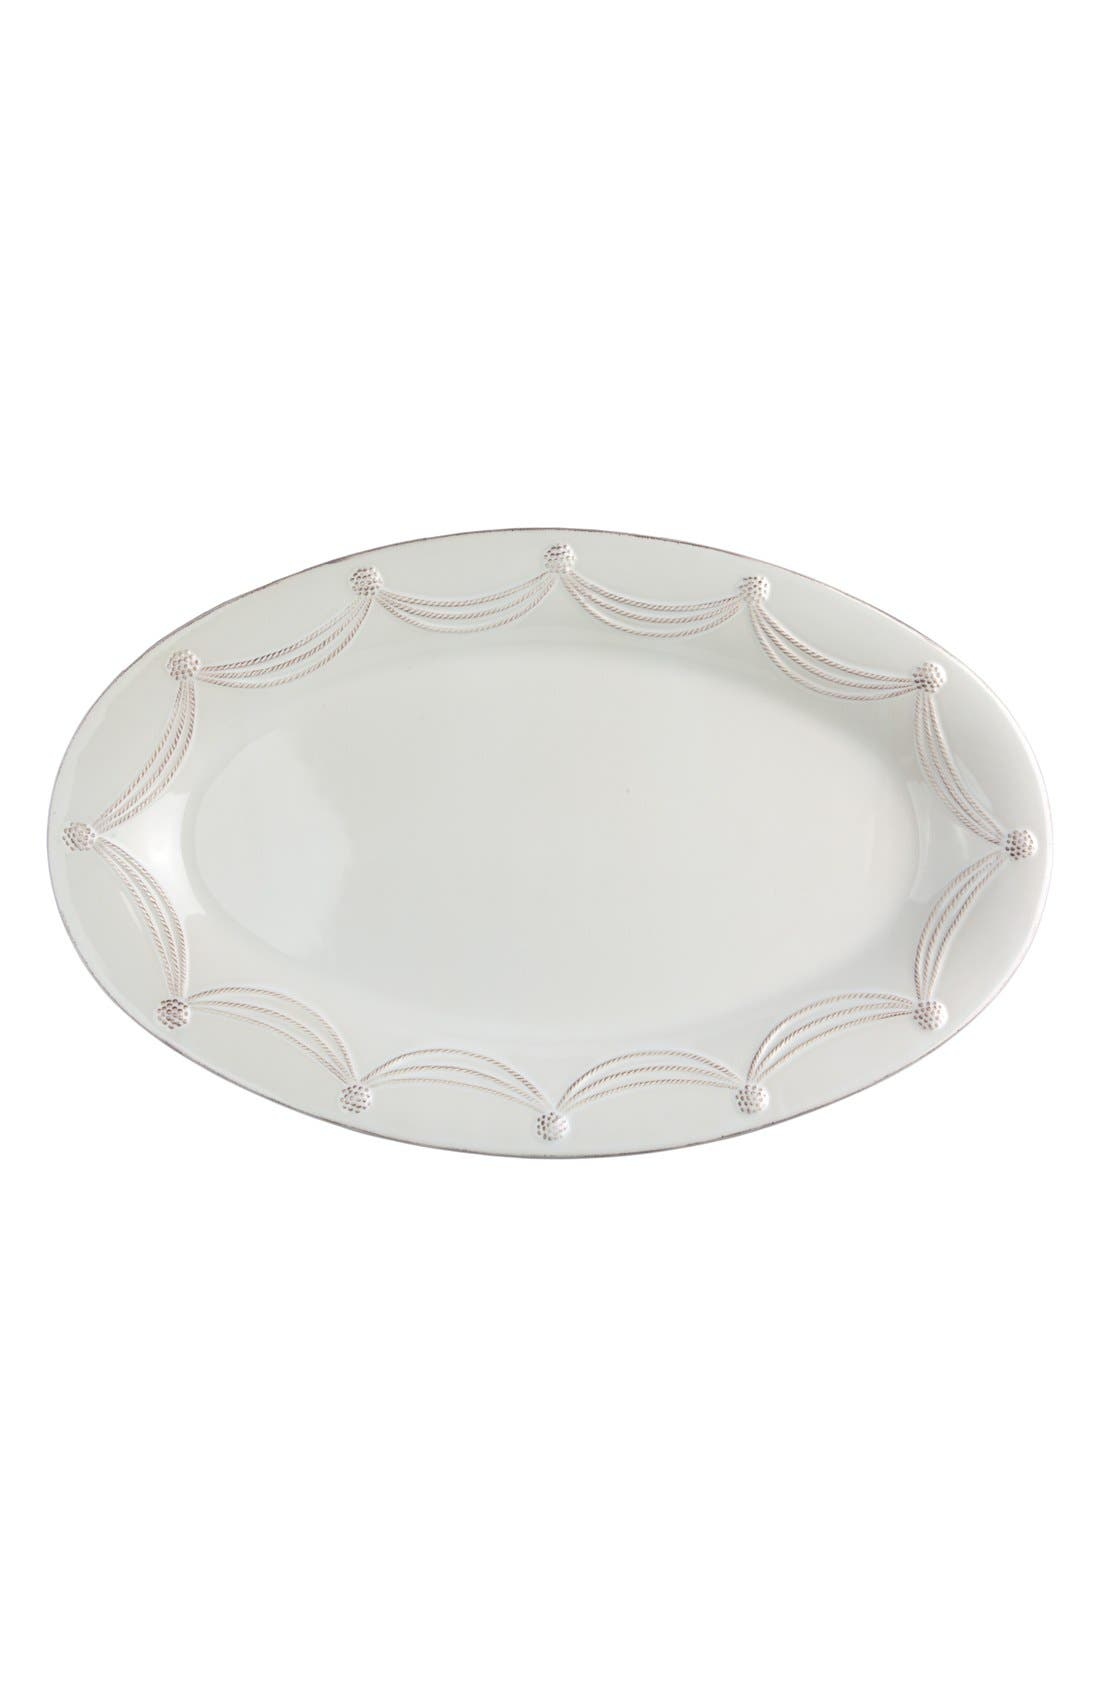 JULISKA 'Berry and Thread' Oval Platter